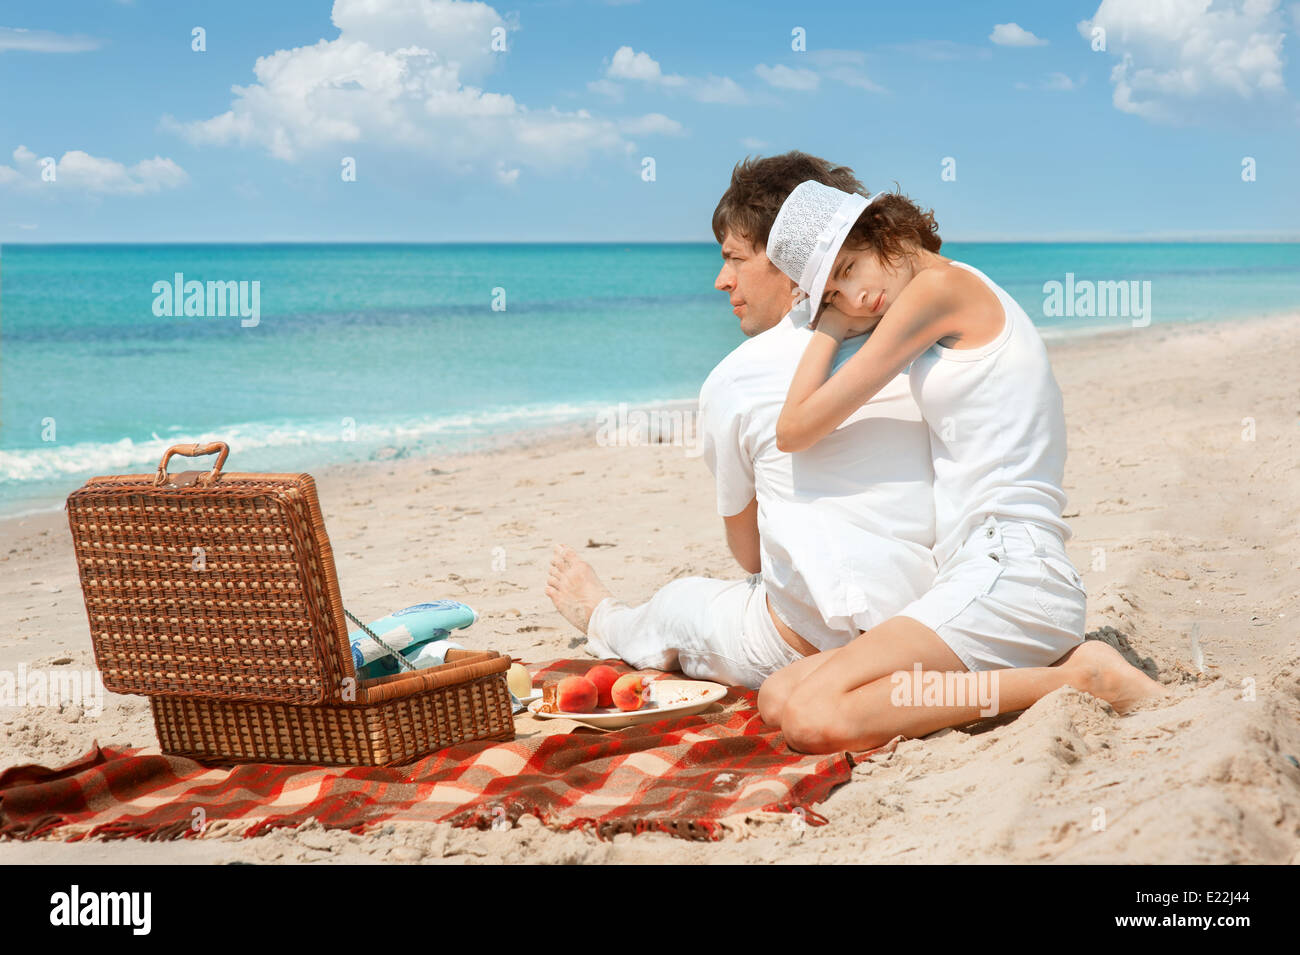 Vacation - Stock Image